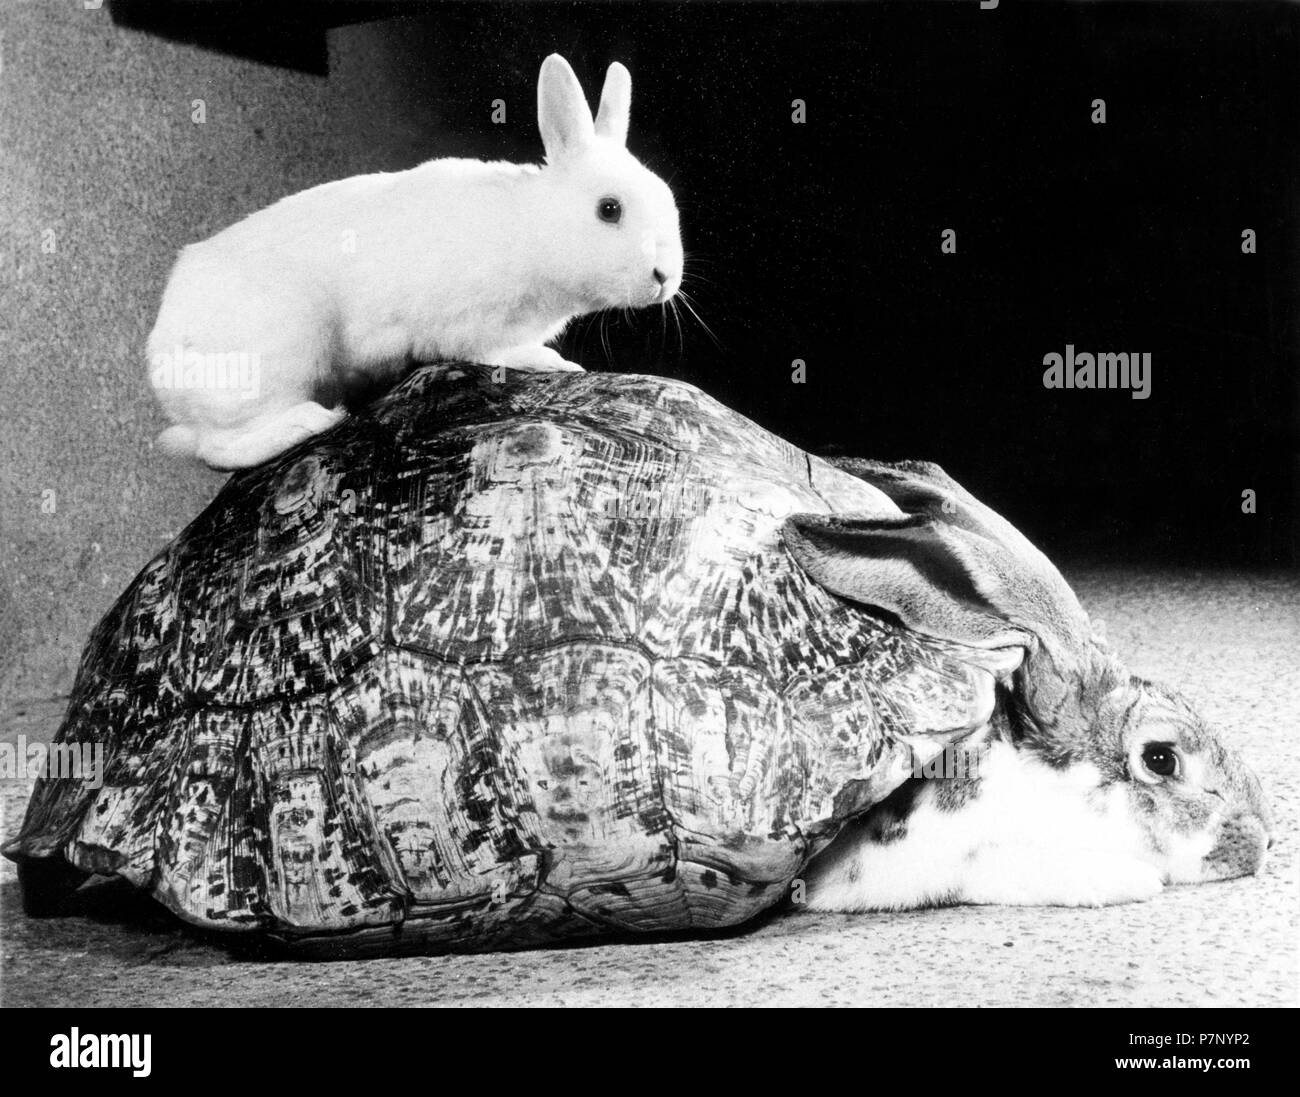 Rabbits playing with a turtle shell, England, Great Britain